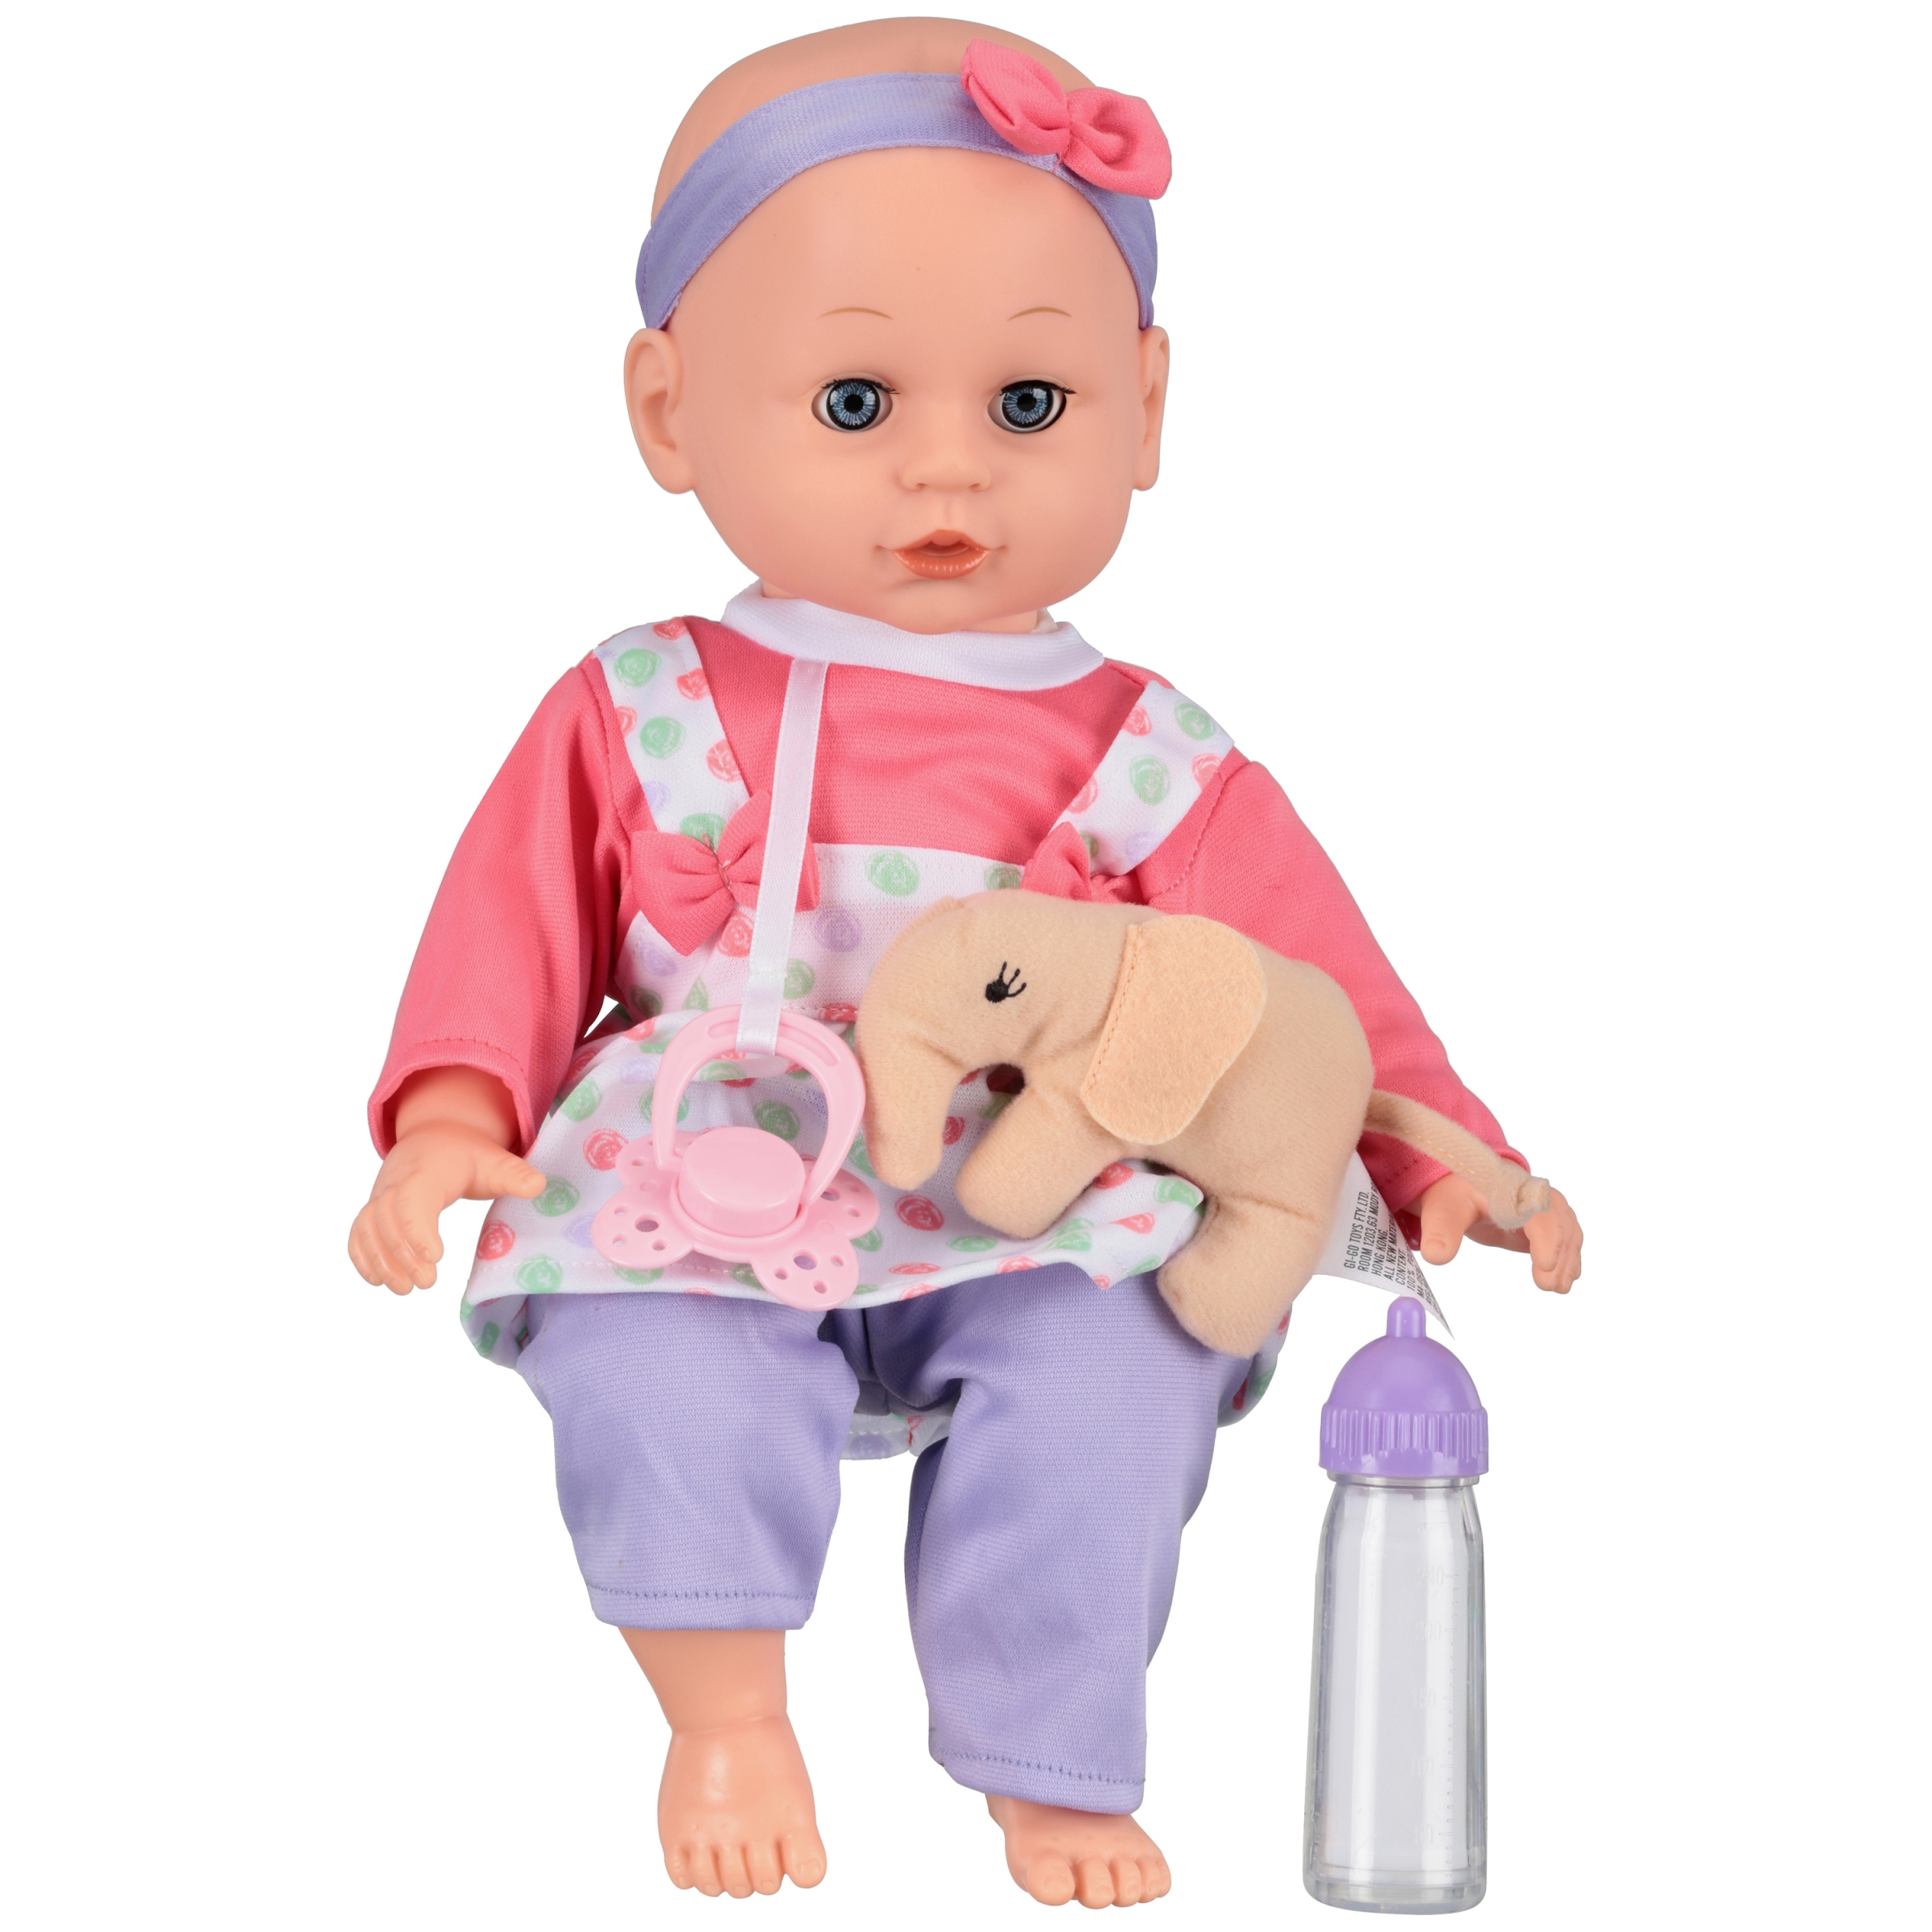 My Sweet Love® Baby Doll & Accessories 4 pc Box